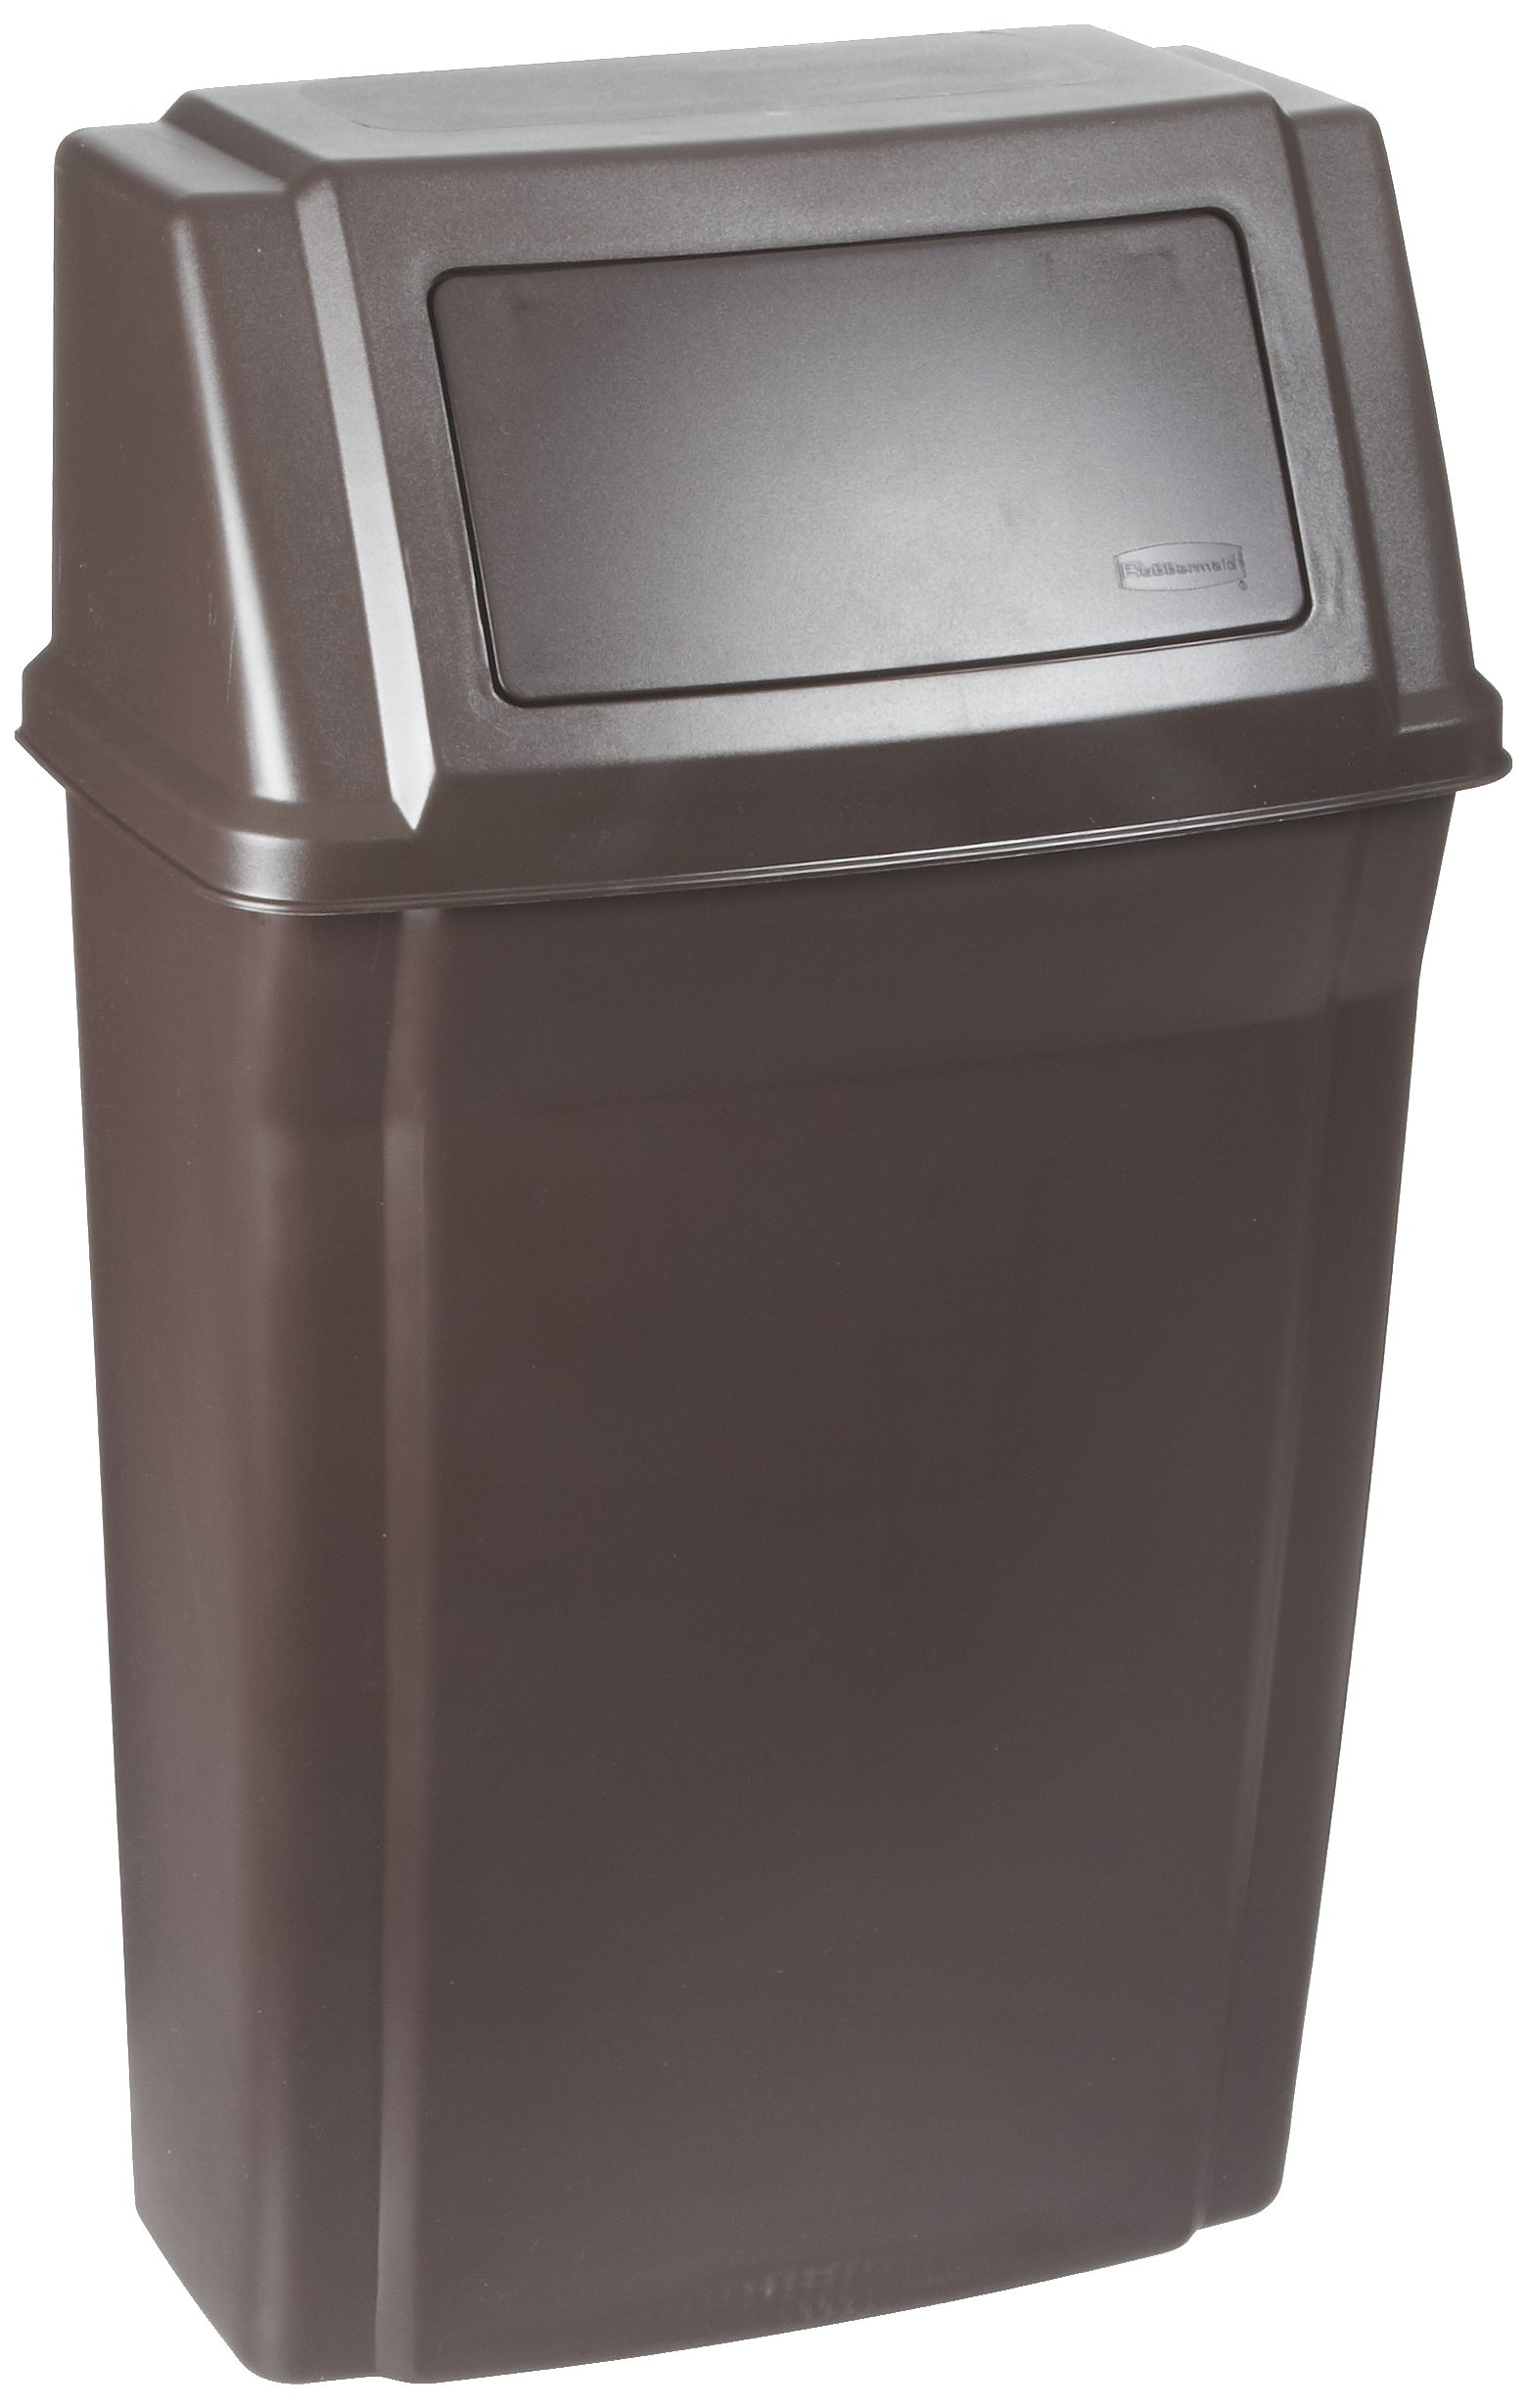 Rubbermaid Commercial Wall Mount Trash Can, 15 Gallon, Brown, FG782200BRN